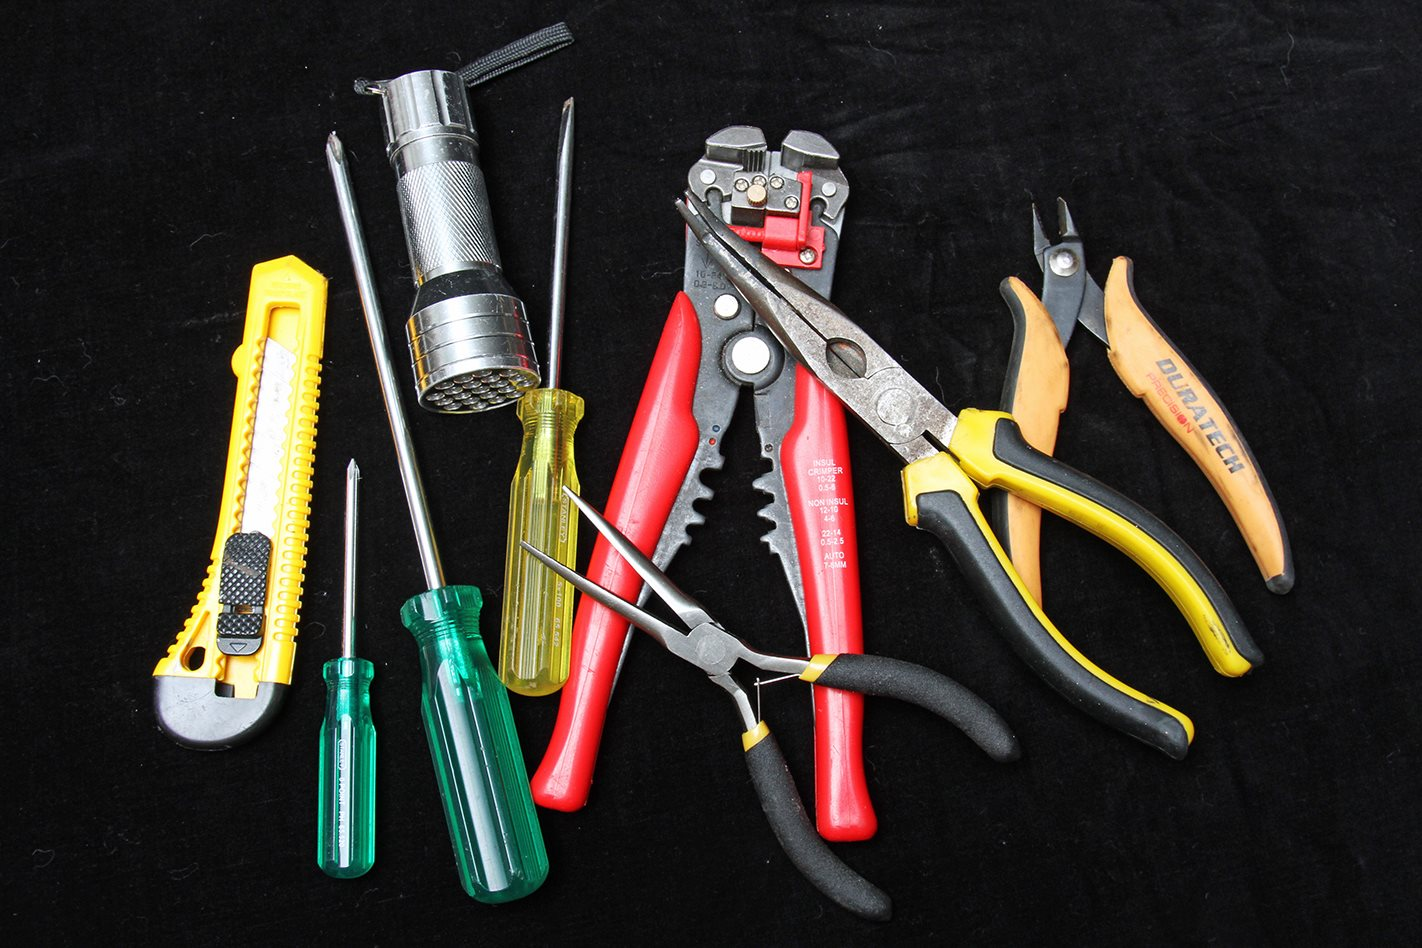 Small Set of Basic Tools